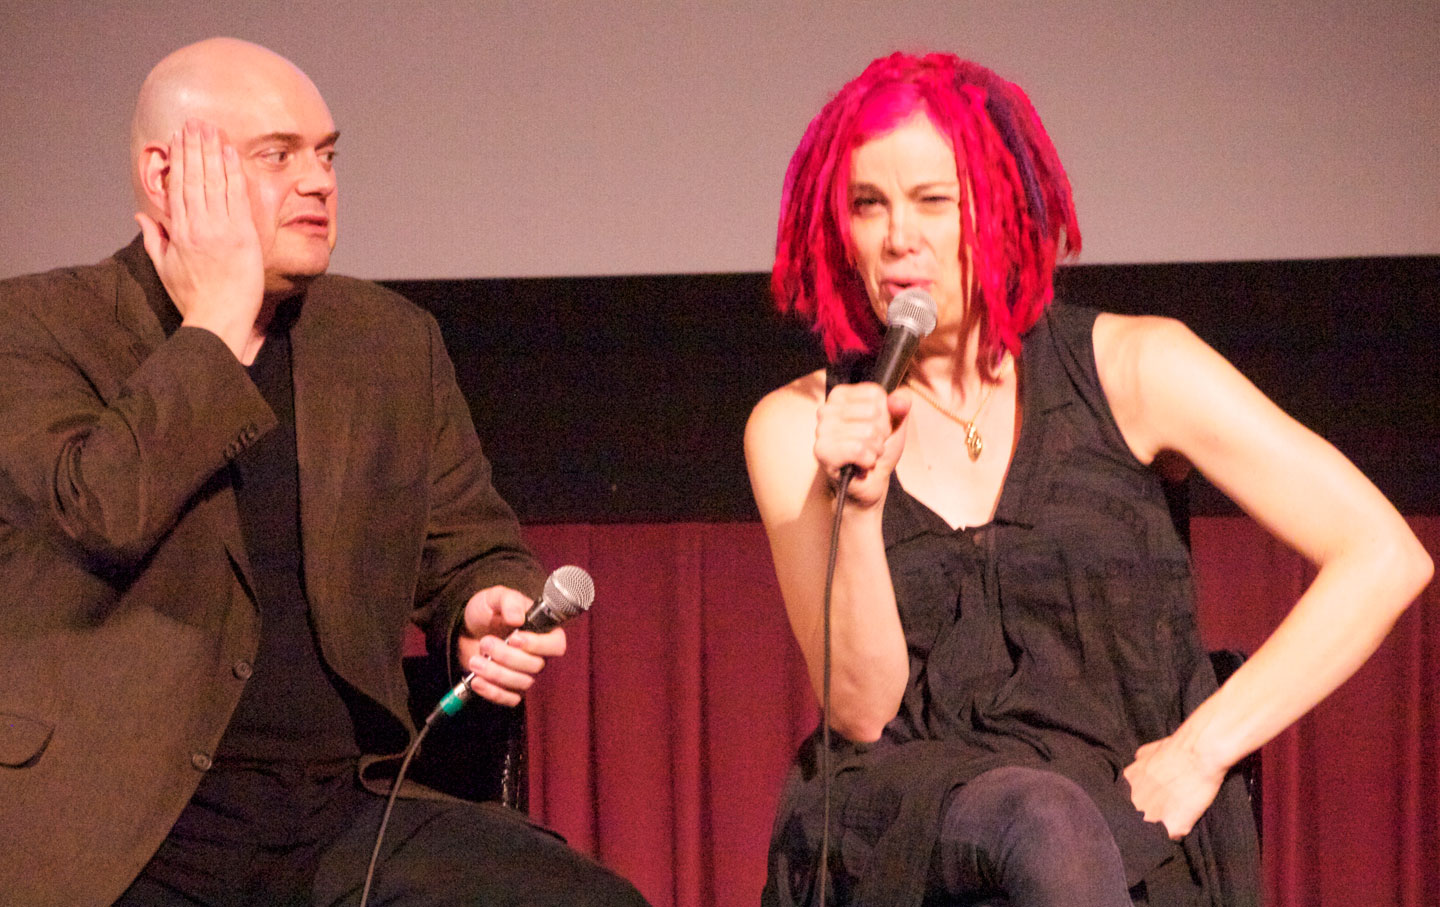 Andy and Lana Wachowski. (Credit: Wikimedia)